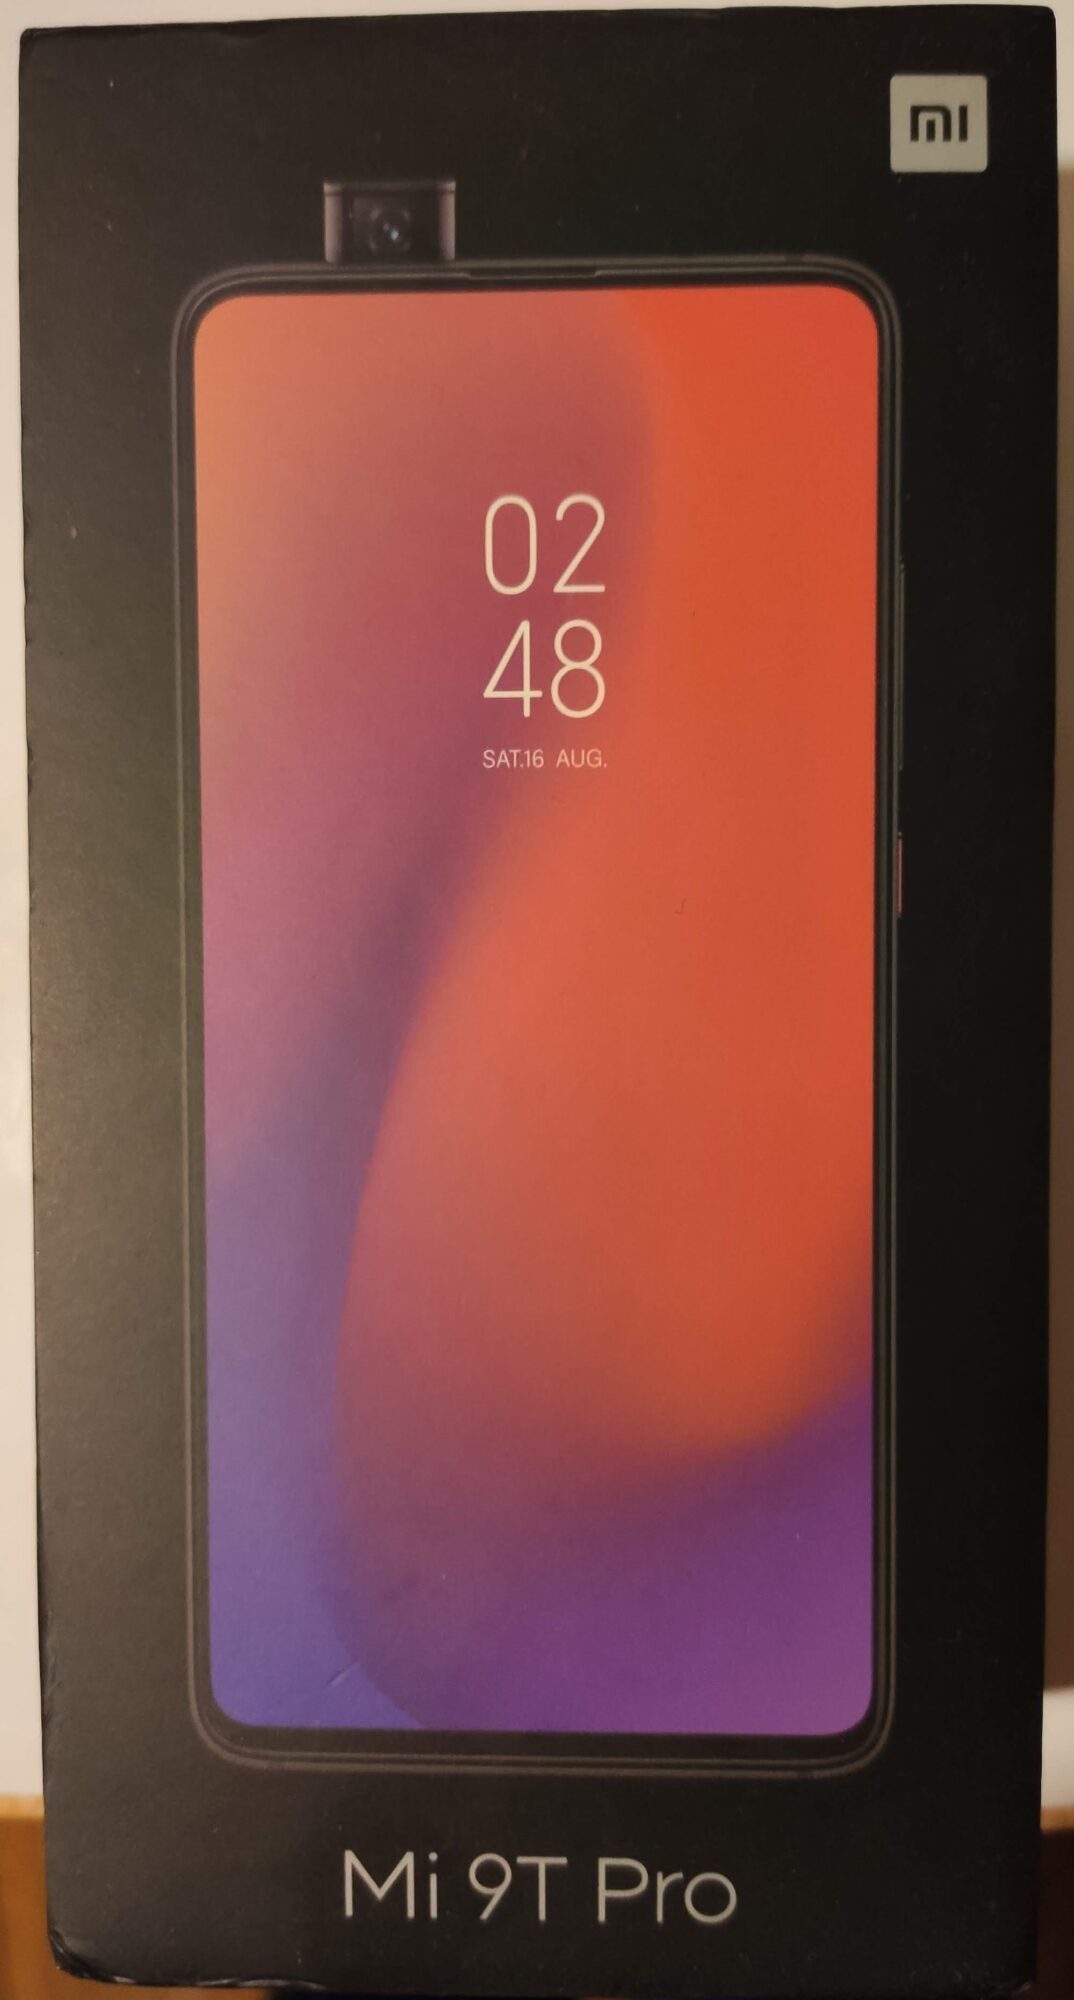 MI 9T Pro écran miui pop-up borderless boîte Snadpragon 855 48 MP Sony